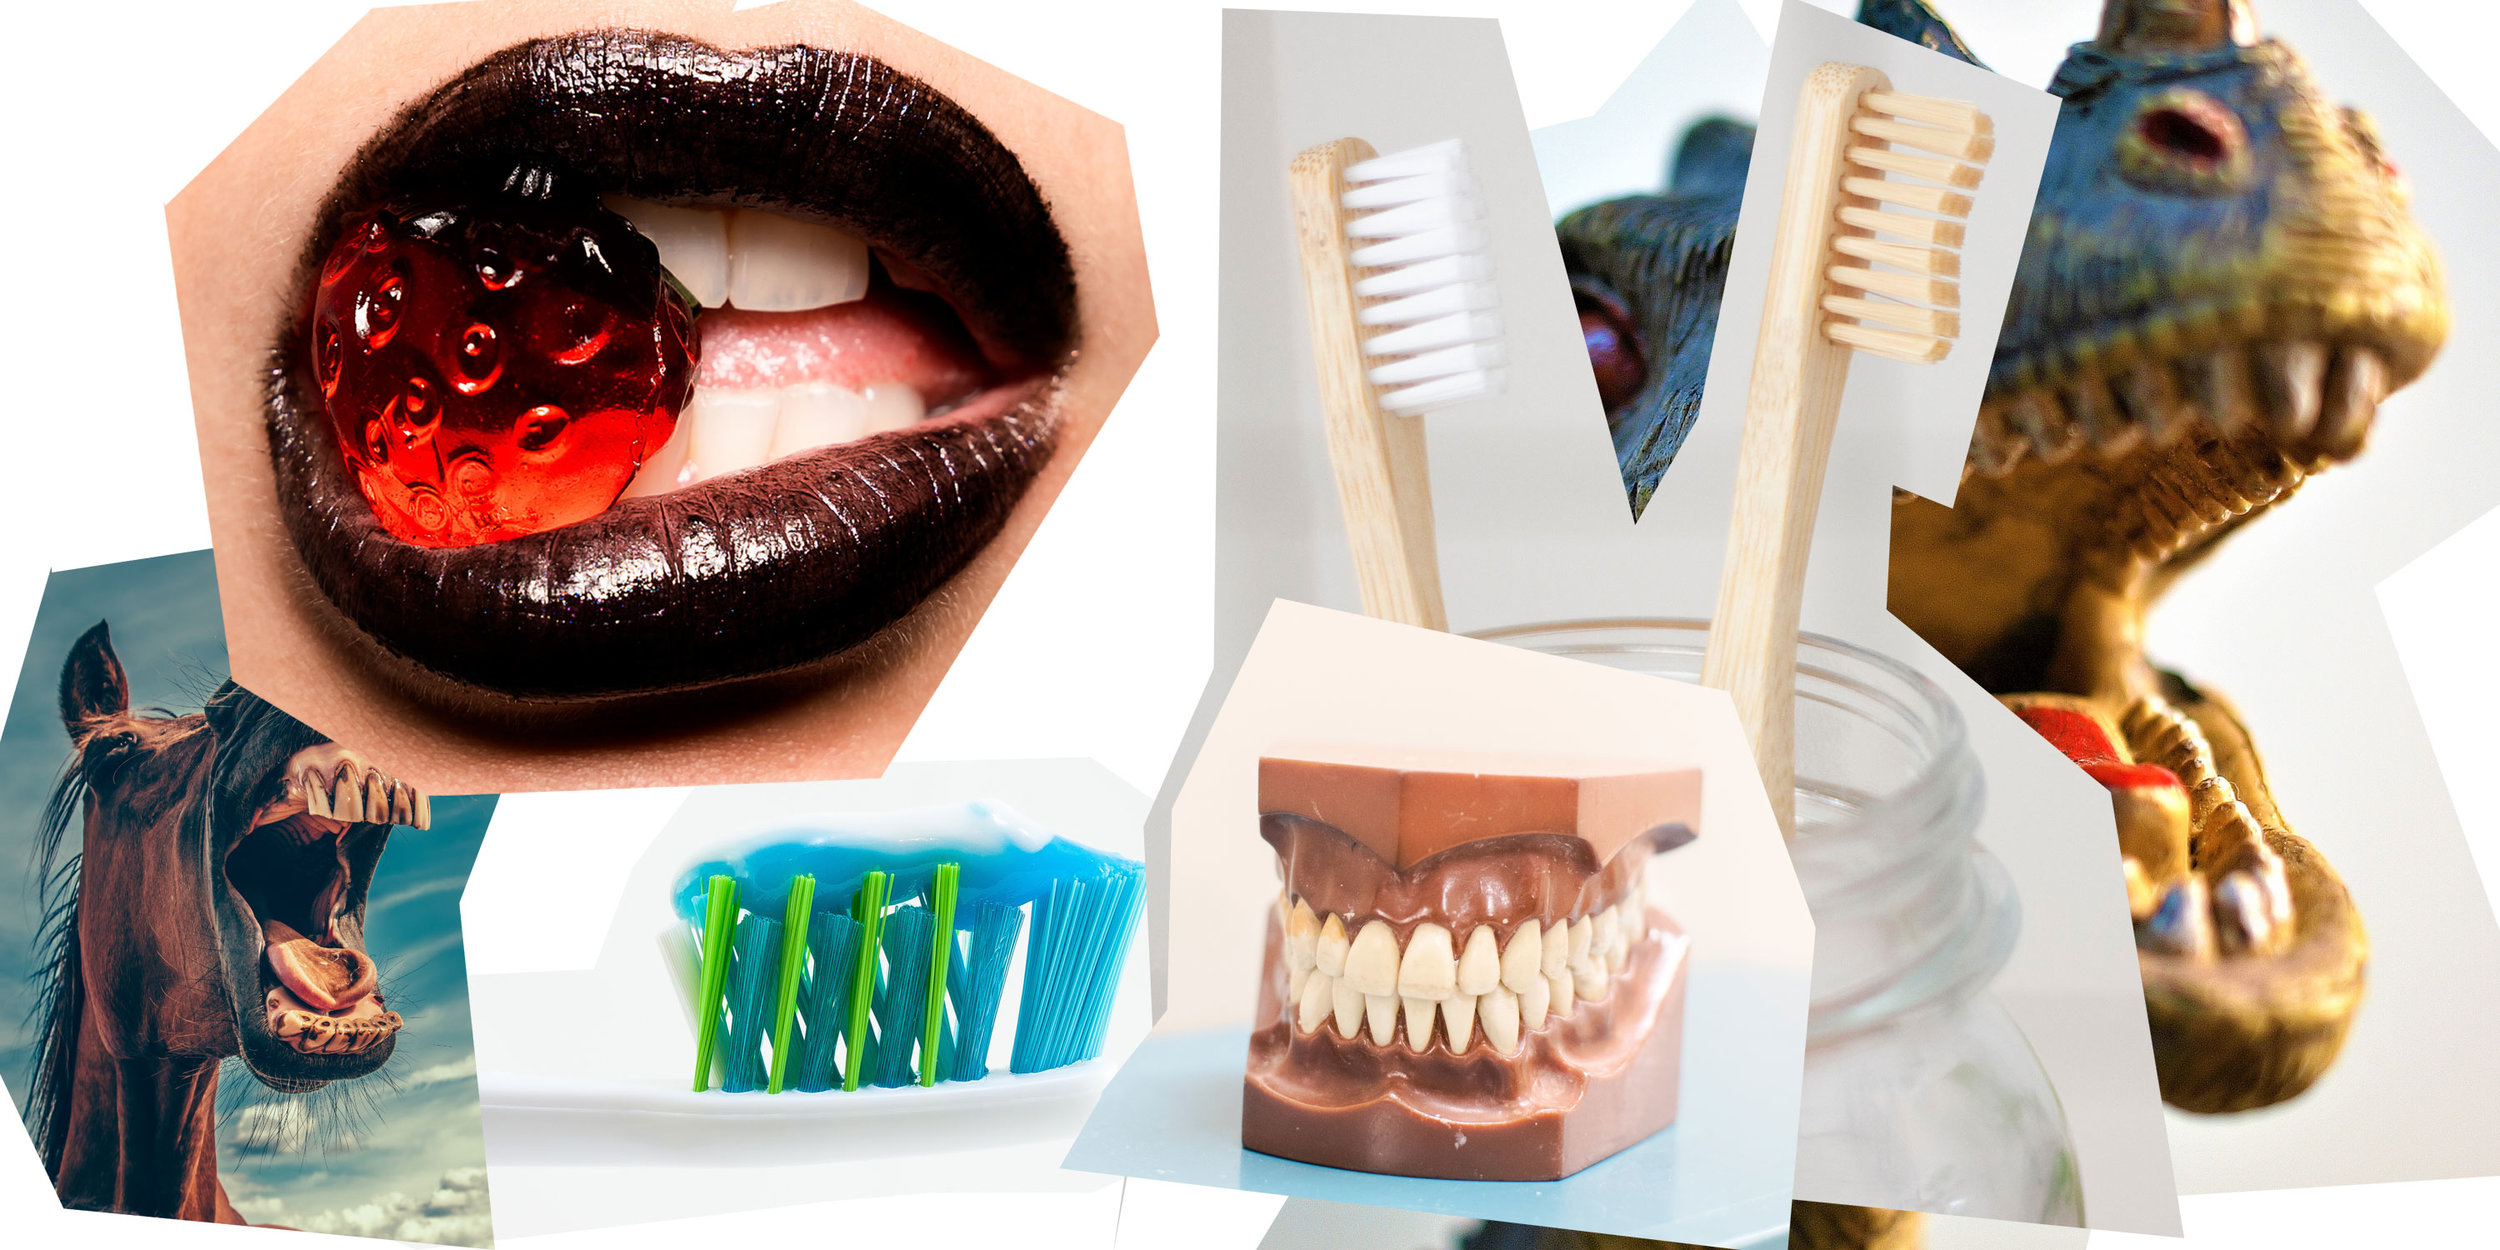 3-Ways-NOT-to-Whiten-Your-Teeth-&-What-to-Do.jpg